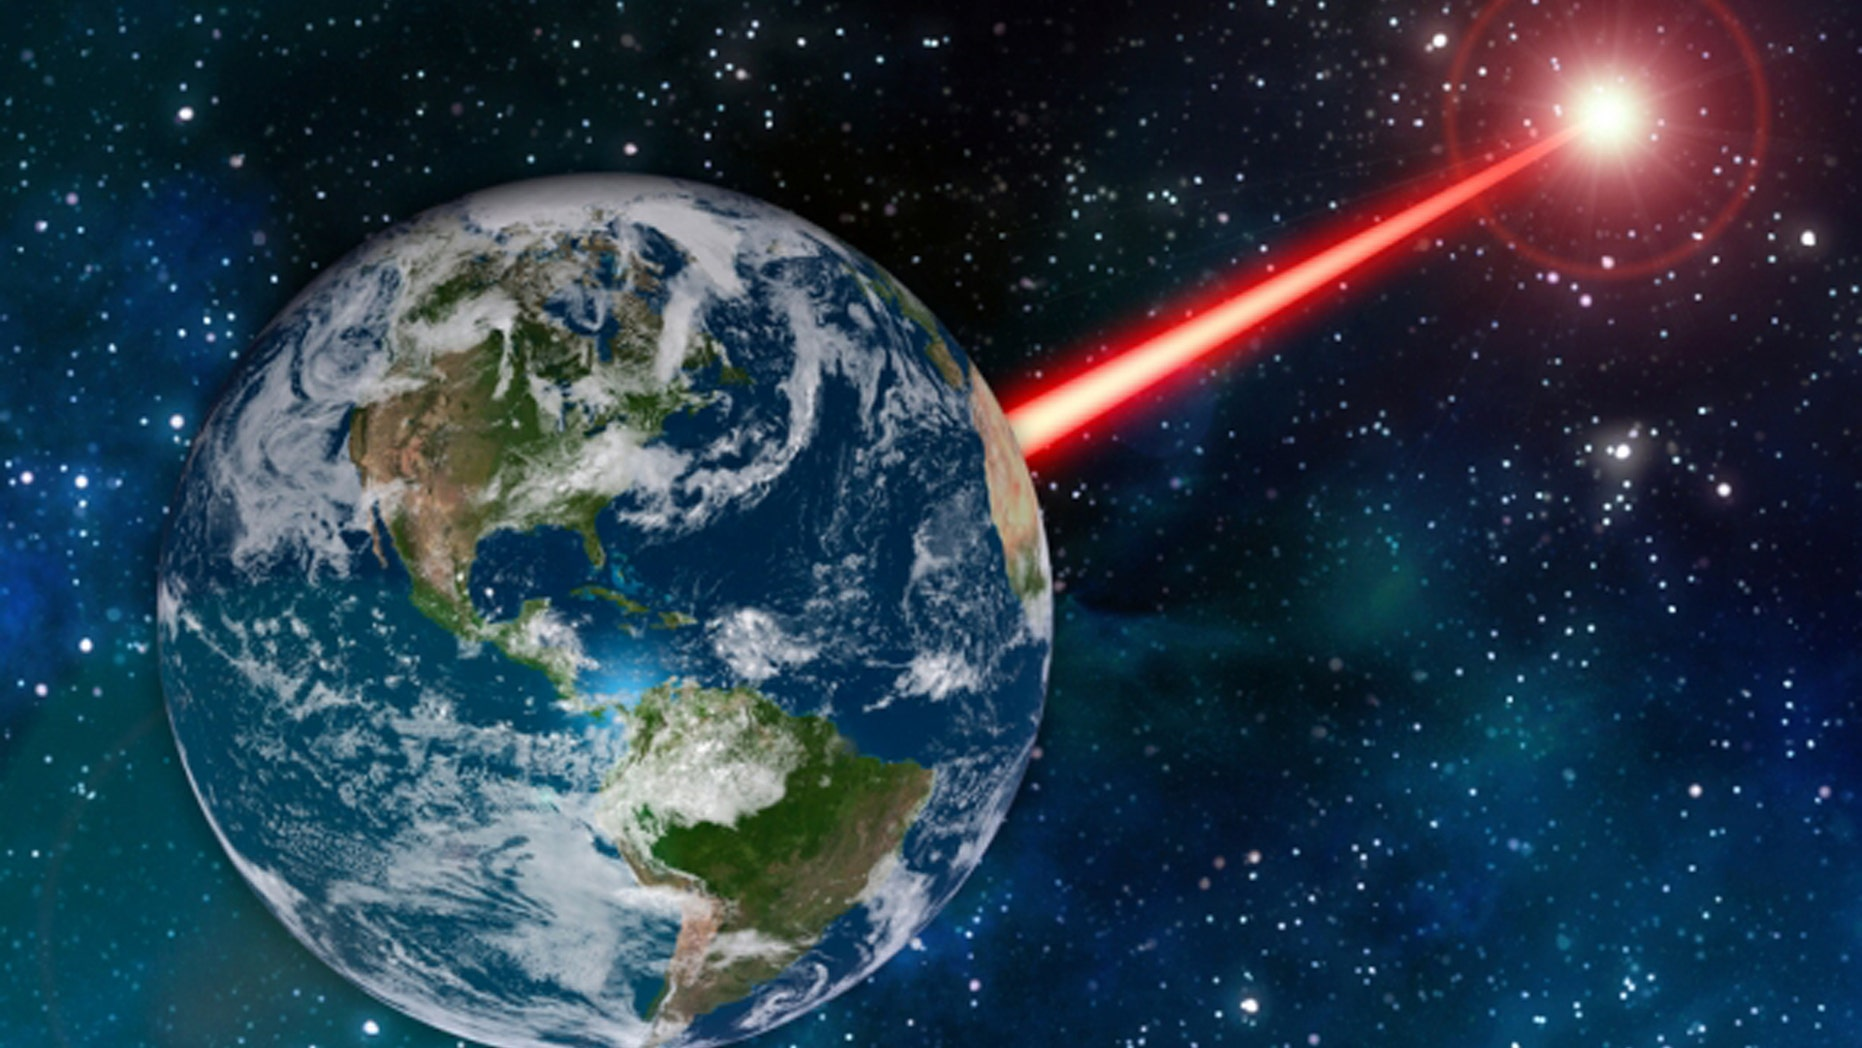 Could a giant laser let aliens know we're here?